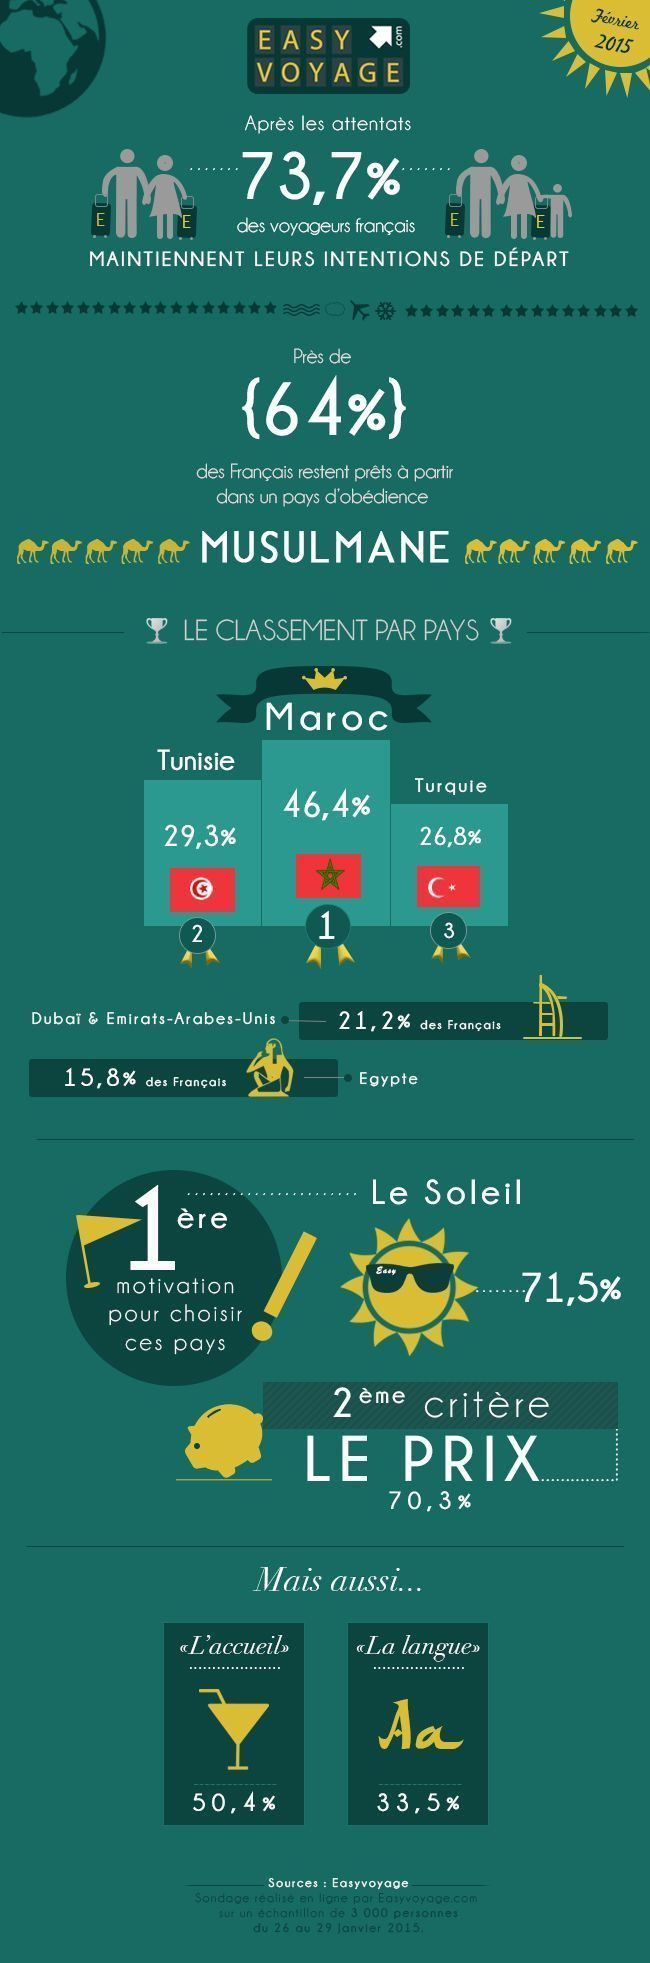 Infographie EasyVoyage